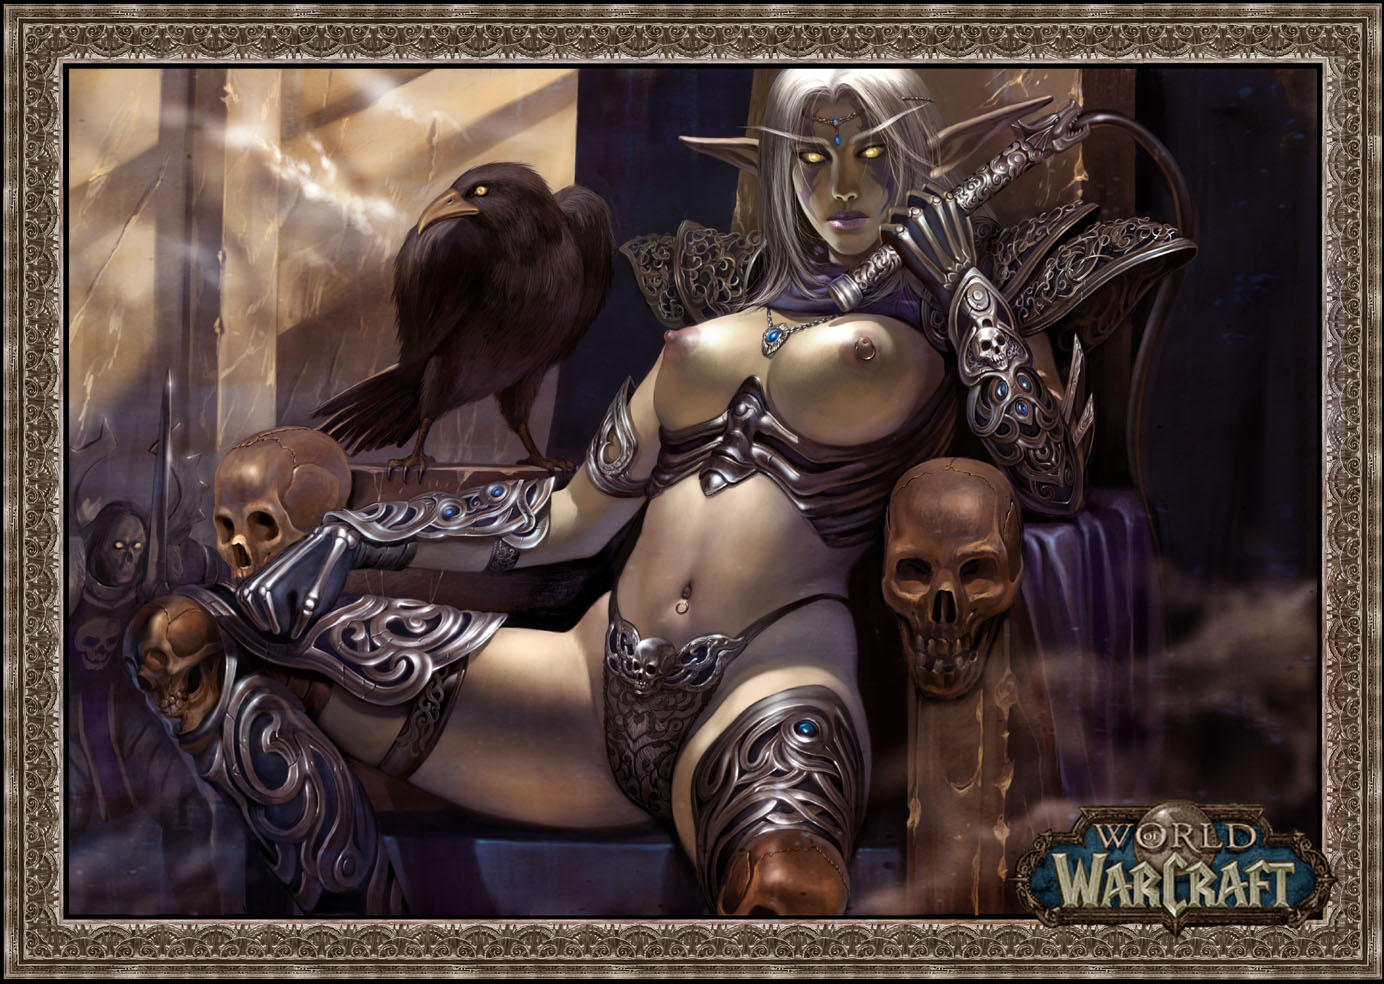 Sexy world of warcraft pic erotic pictures